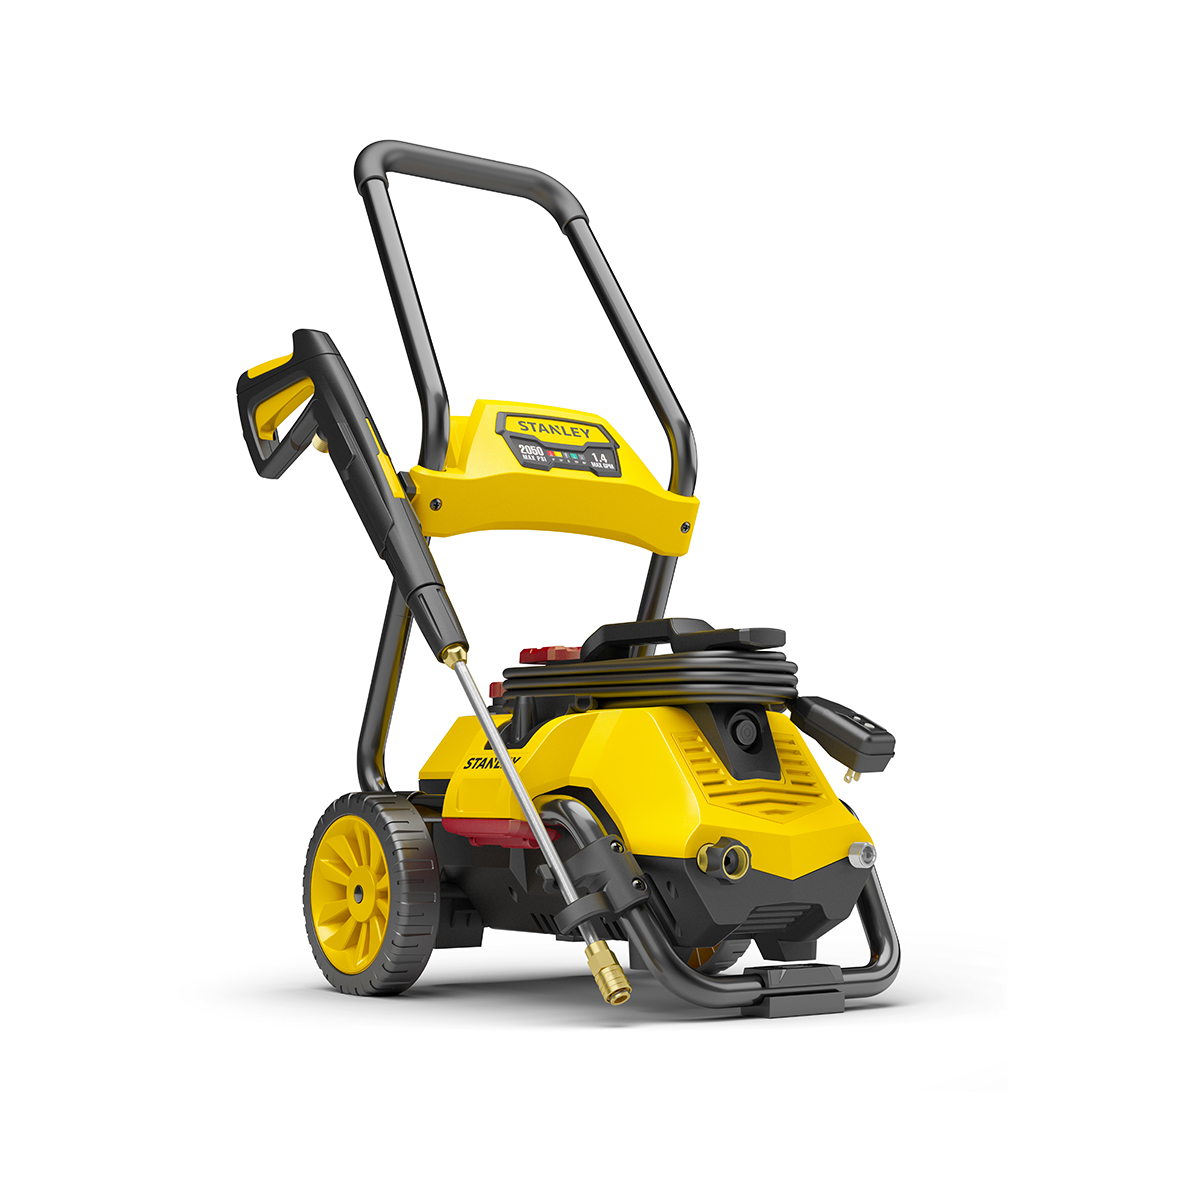 Stanley SLP 2,050 PSI 2-In-1 Electric Pressure Washer For Cart or Portable Use with Spray Gun,... by Annovi Reverberi